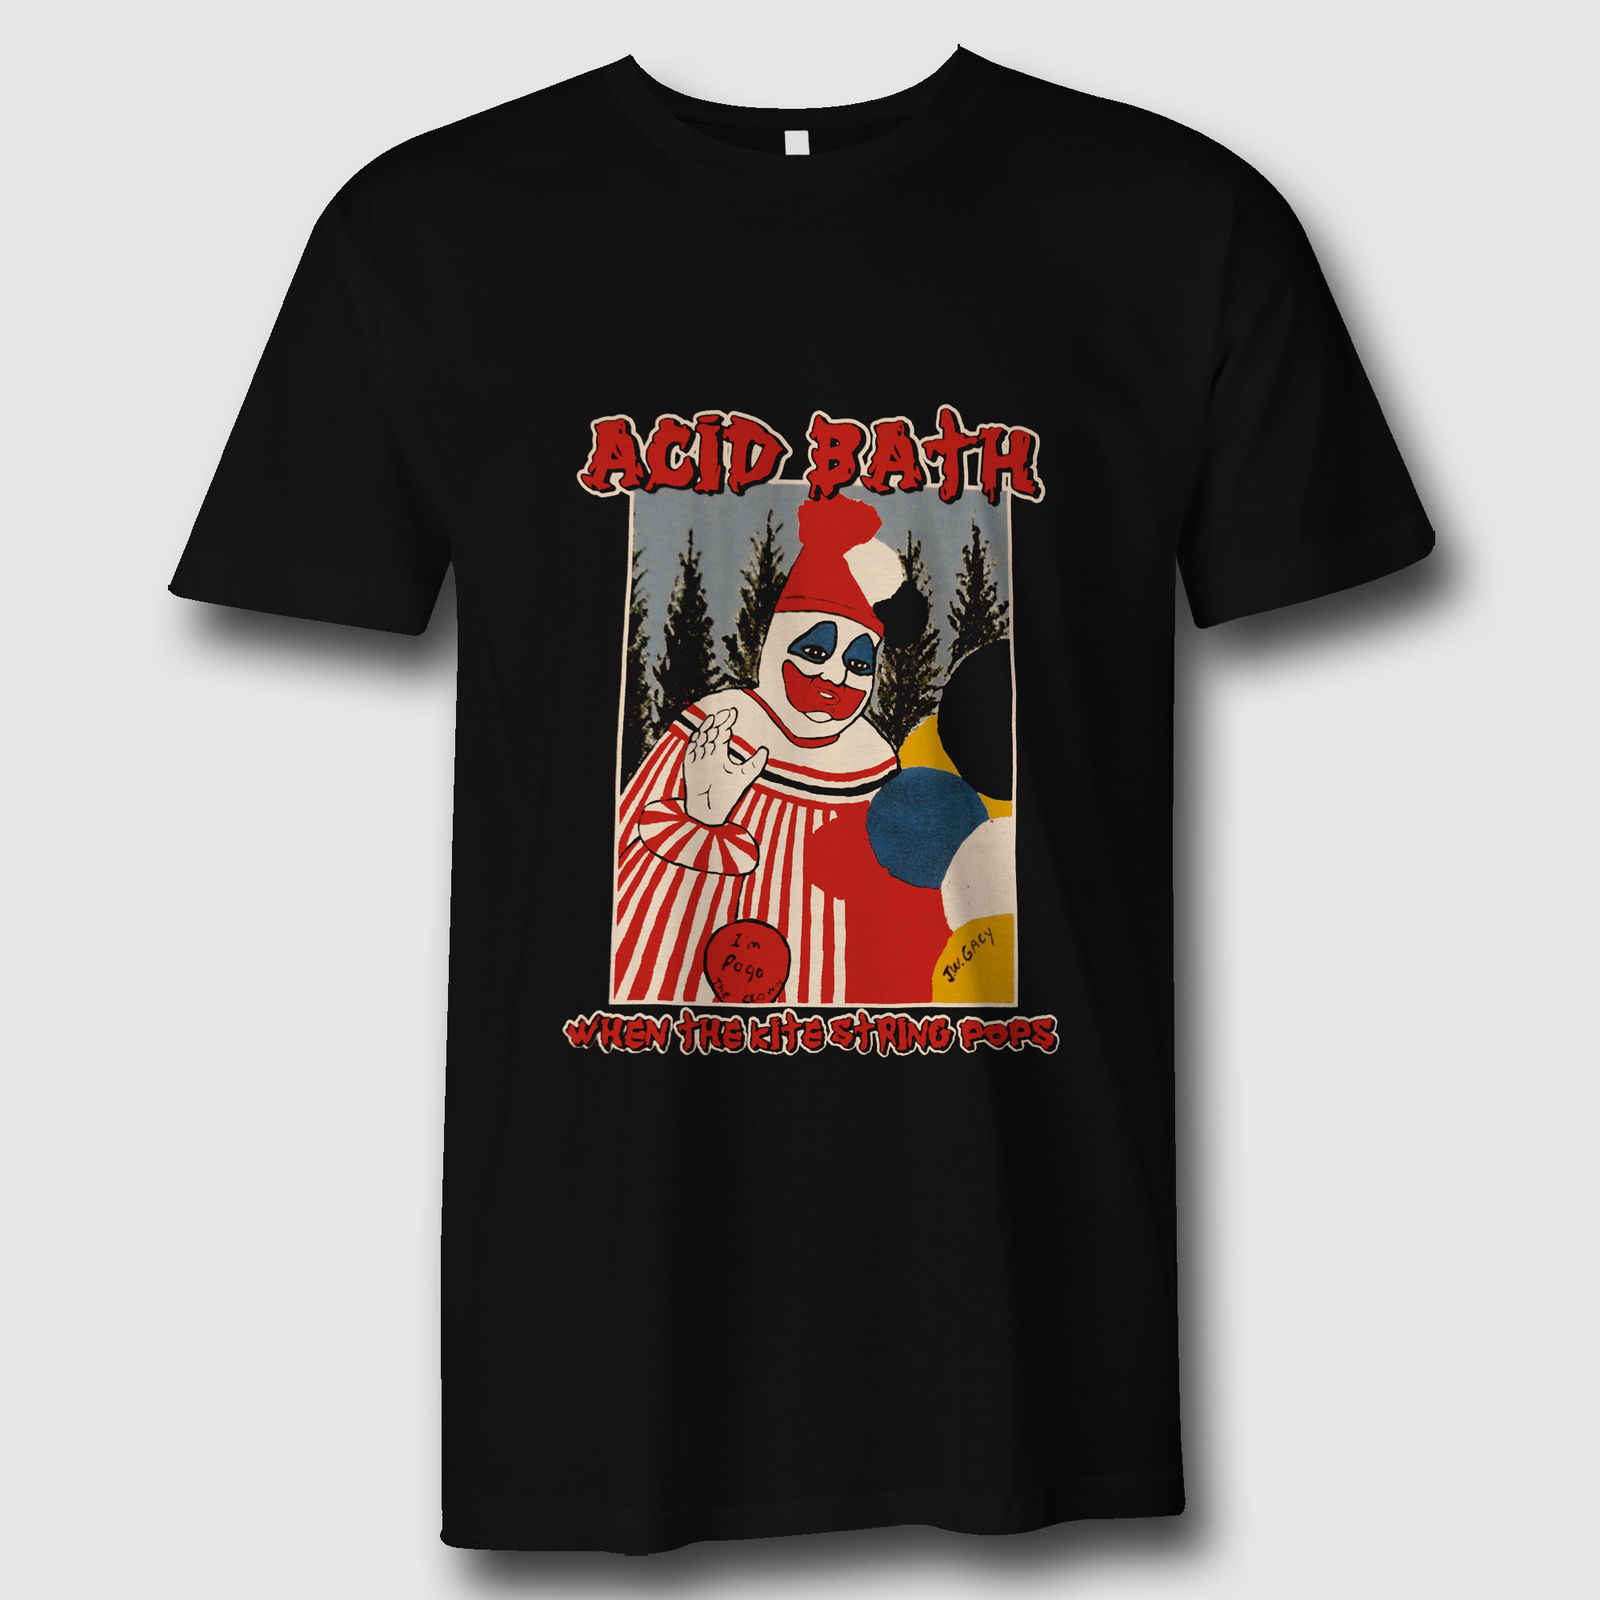 ACID BATH Tee When The Kite String Pops Black T-Shirt Men's And WomenNew Fashion Men T shirts